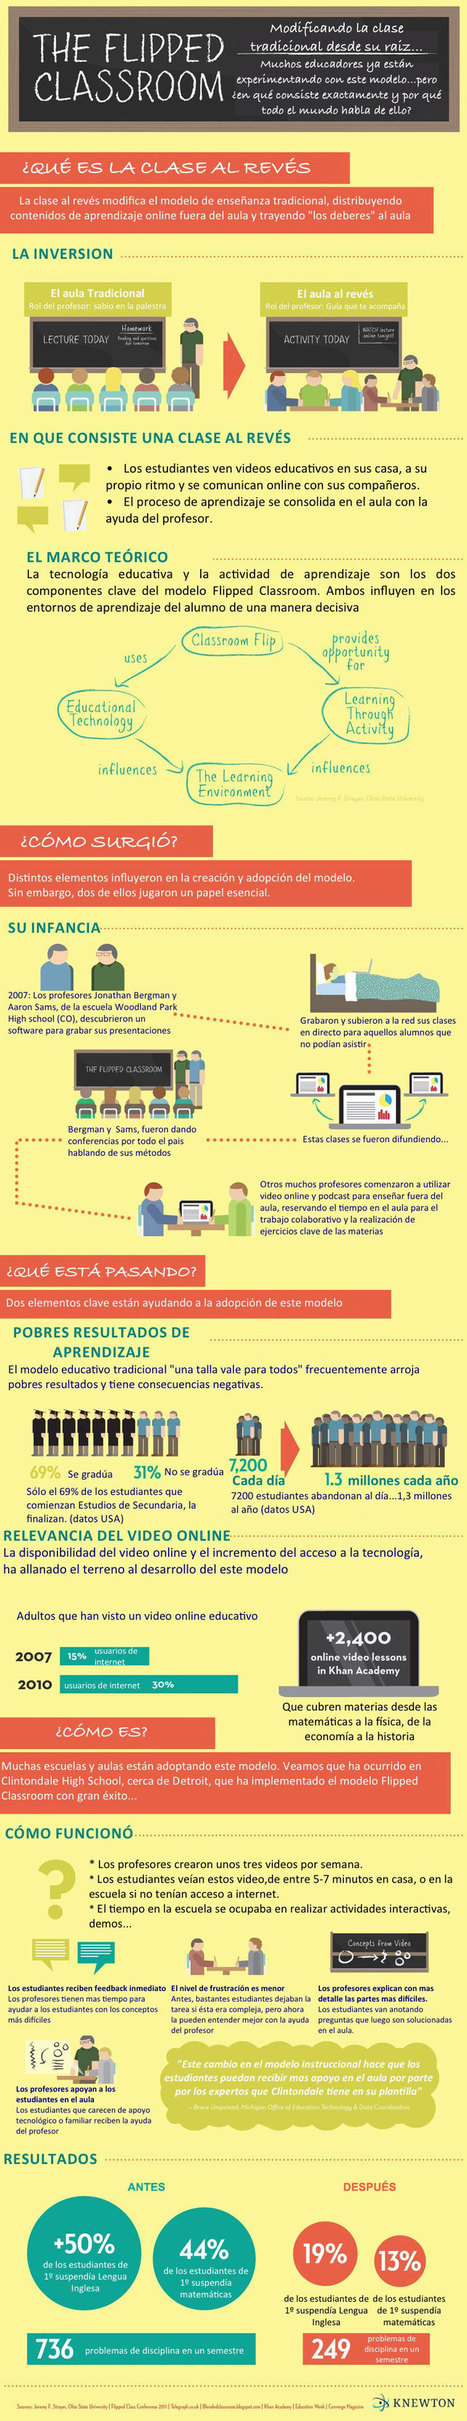 Qué es The Flipped Classroom #infografia #infographic #education | Pedalogica: educación y TIC | Scoop.it